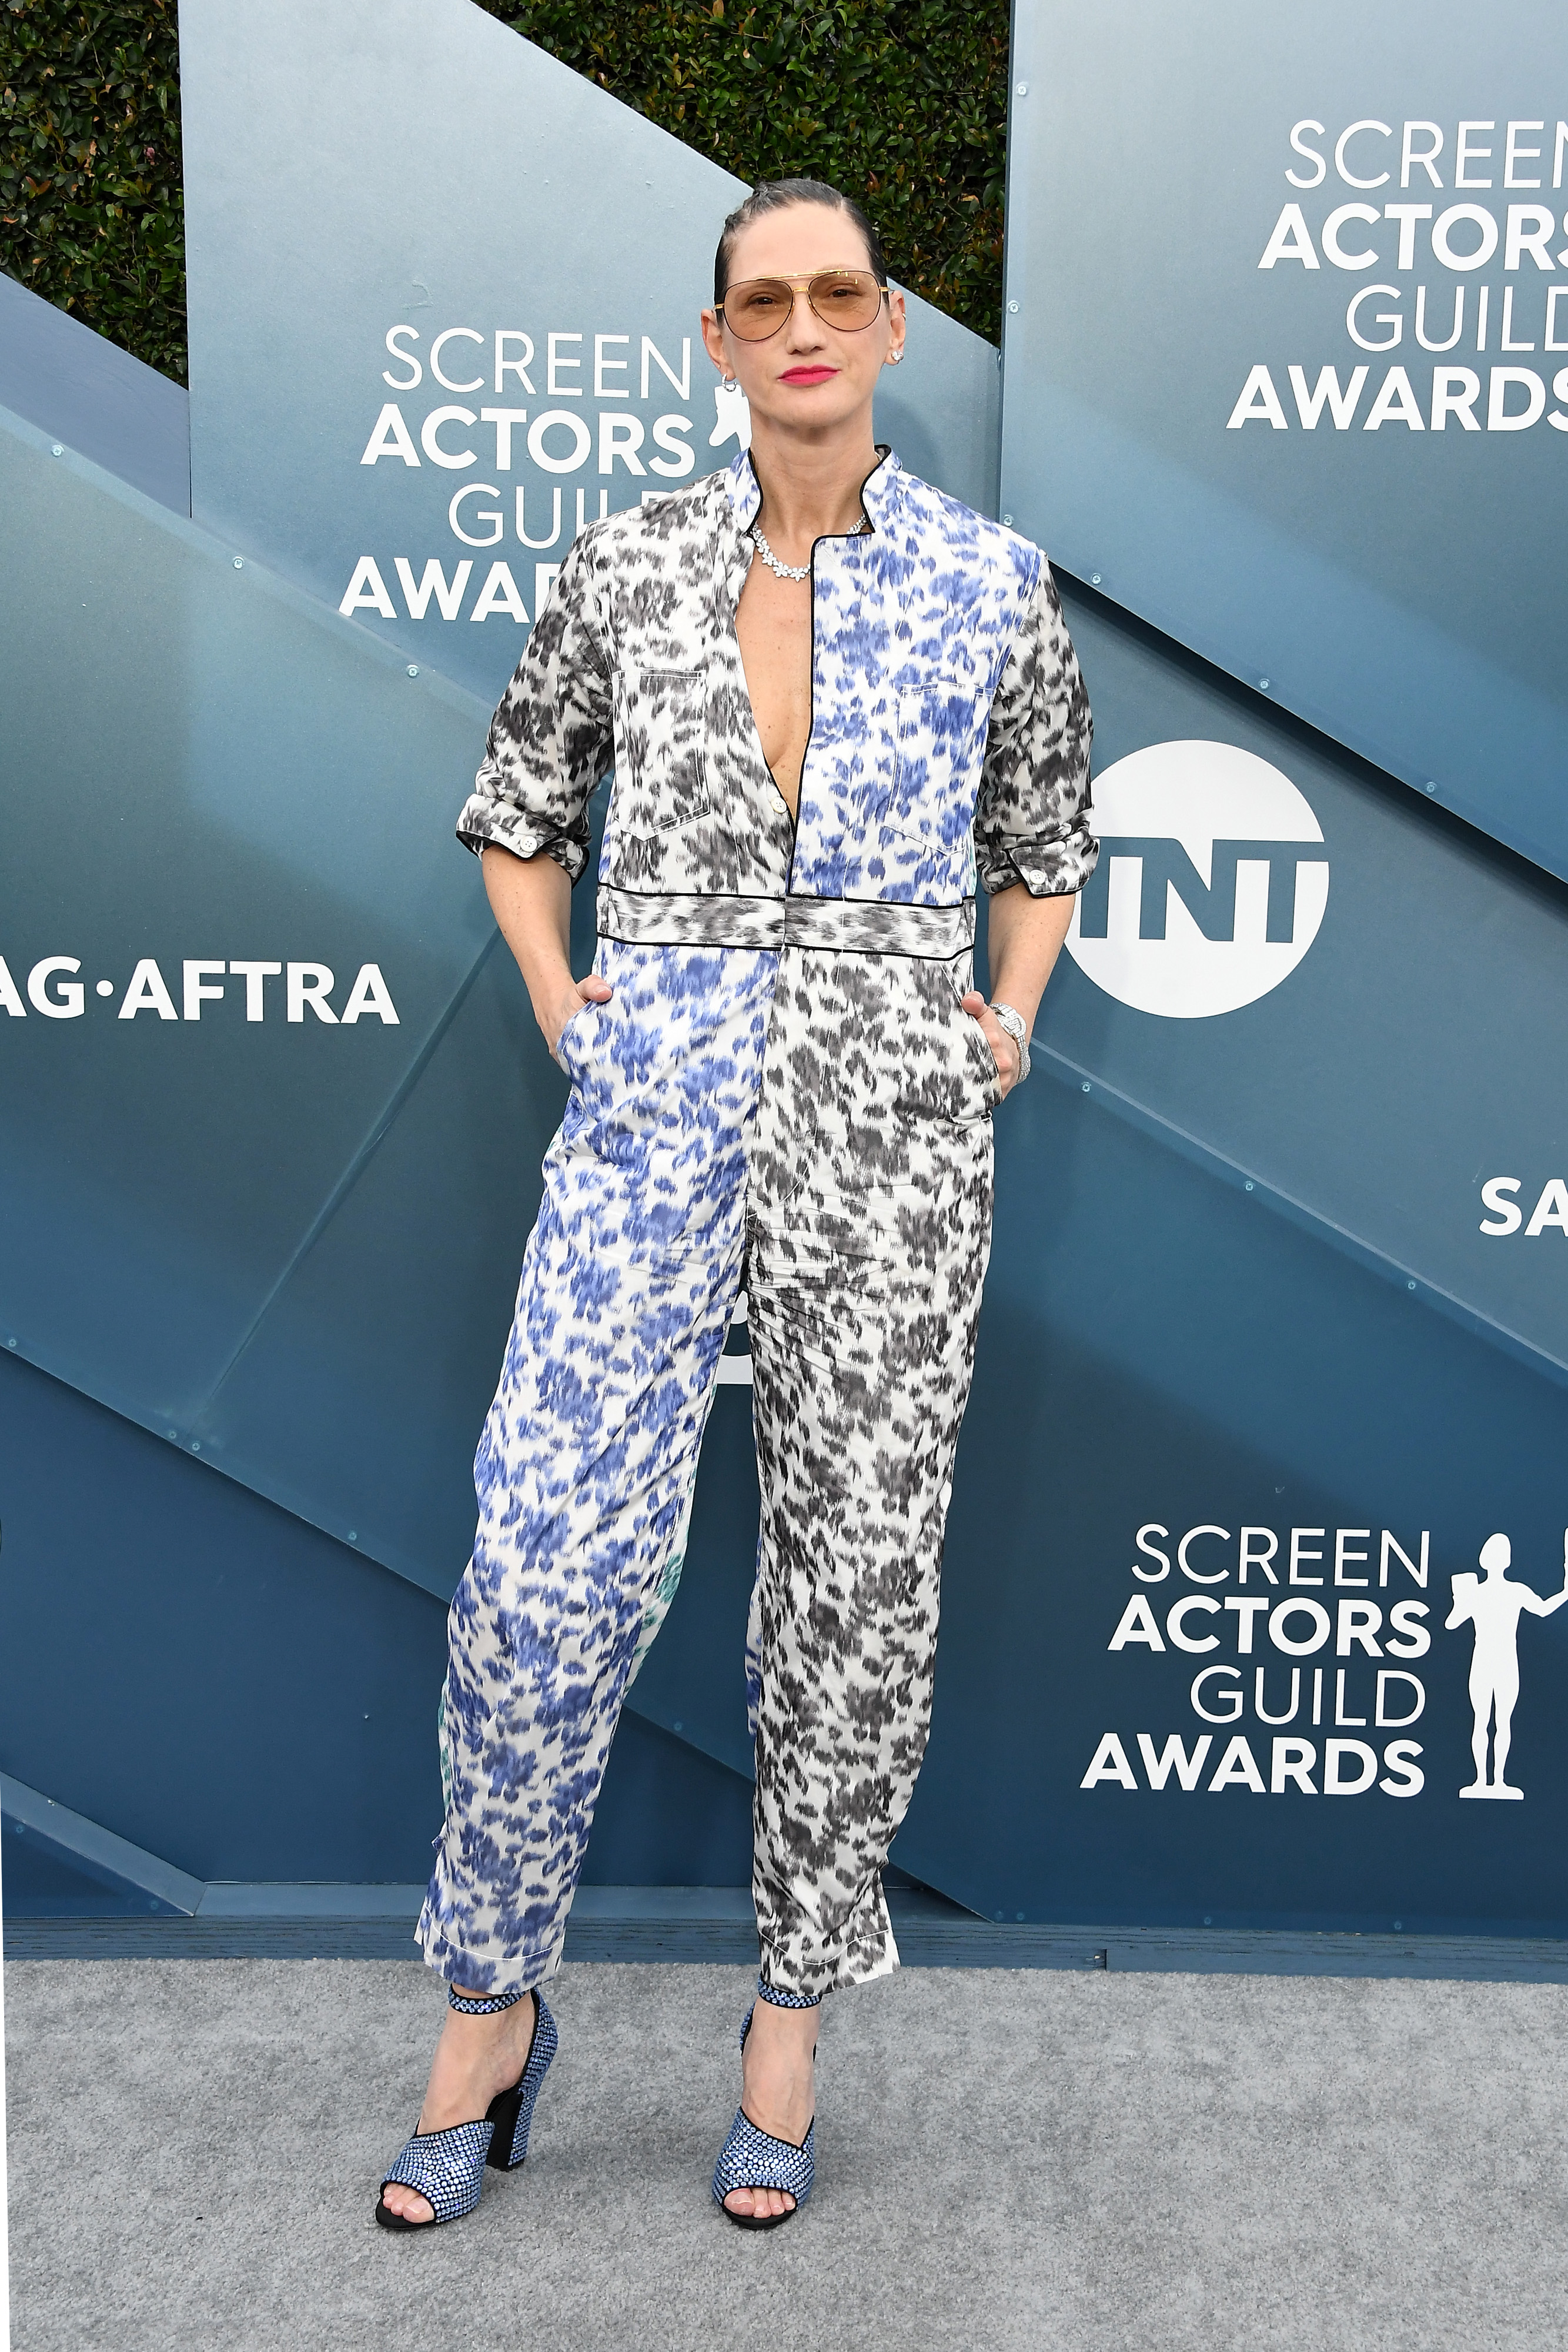 LOS ANGELES, CALIFORNIA - JANUARY 19: Jenna Lyons attends the 26th Annual Screen ActorsGuild Awards at The Shrine Auditorium on January 19, 2020 in Los Angeles, California. (Photo by Steve Granitz/WireImage)